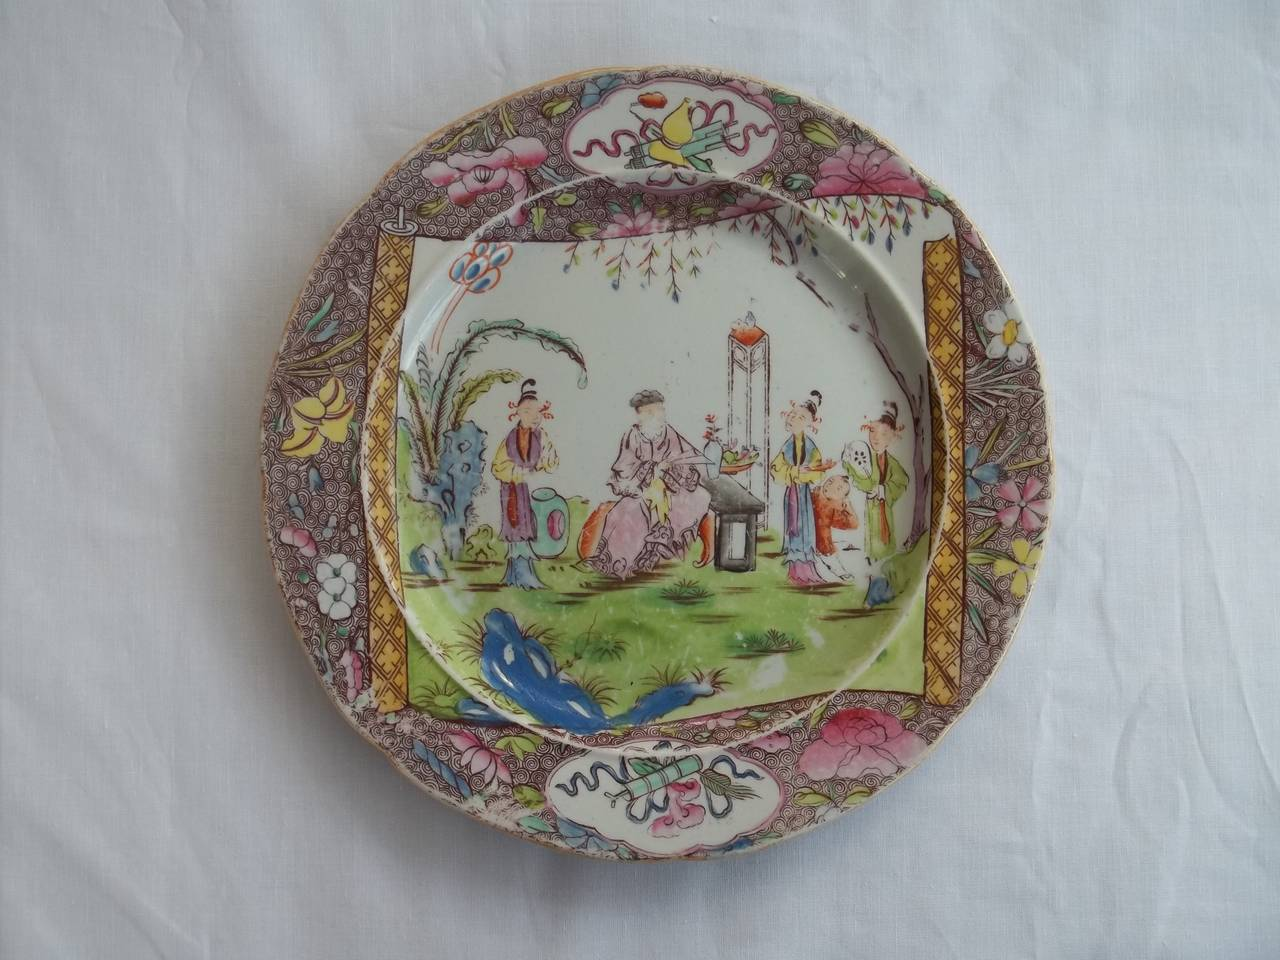 dating masons ironstone Choose from 100+ antique plates, prices from £110 to £30000 only genuine antique plates approved date of manufacture declared on all antique plates.